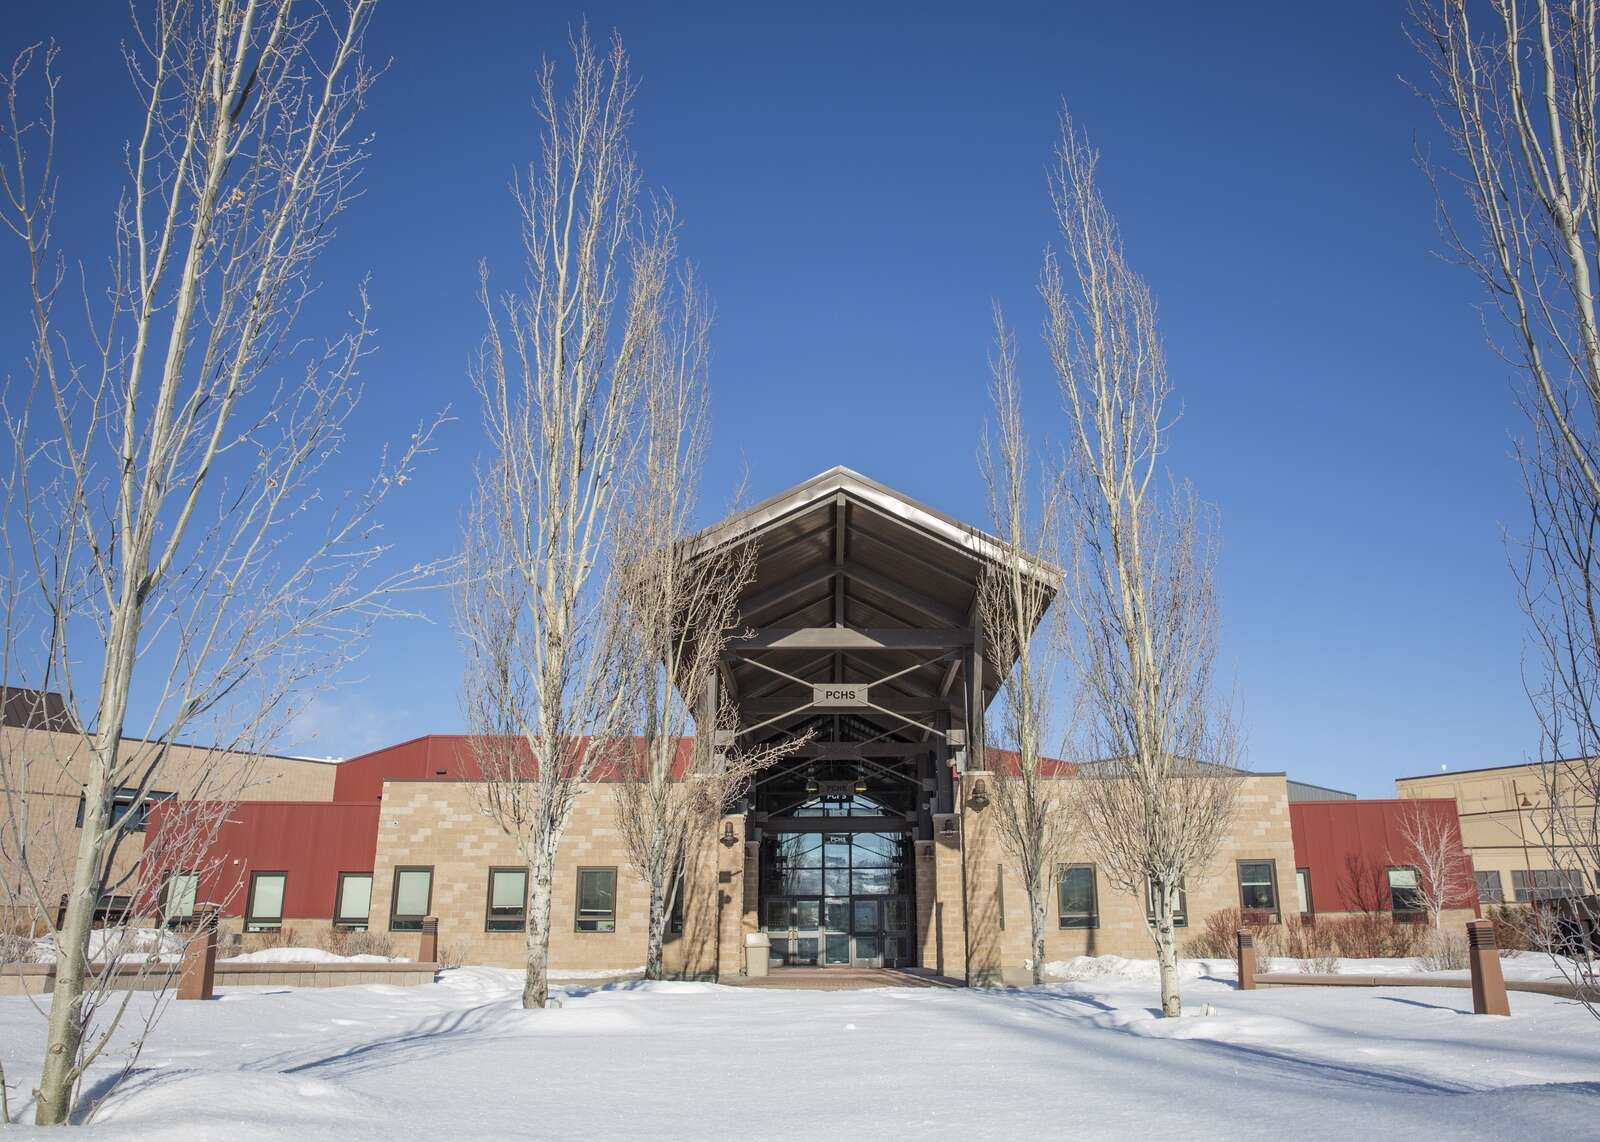 The Park City School District is on track for a potential $100M-plus bond this fall